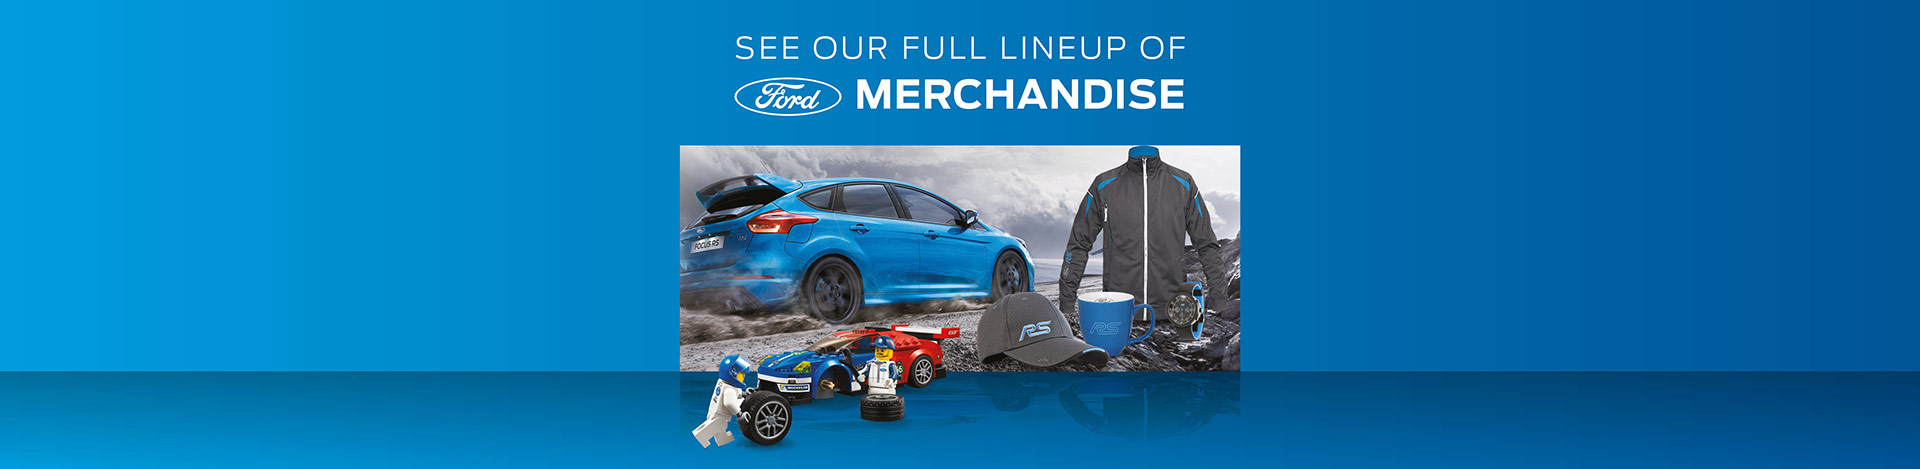 Ford Merchandise Shop Banners